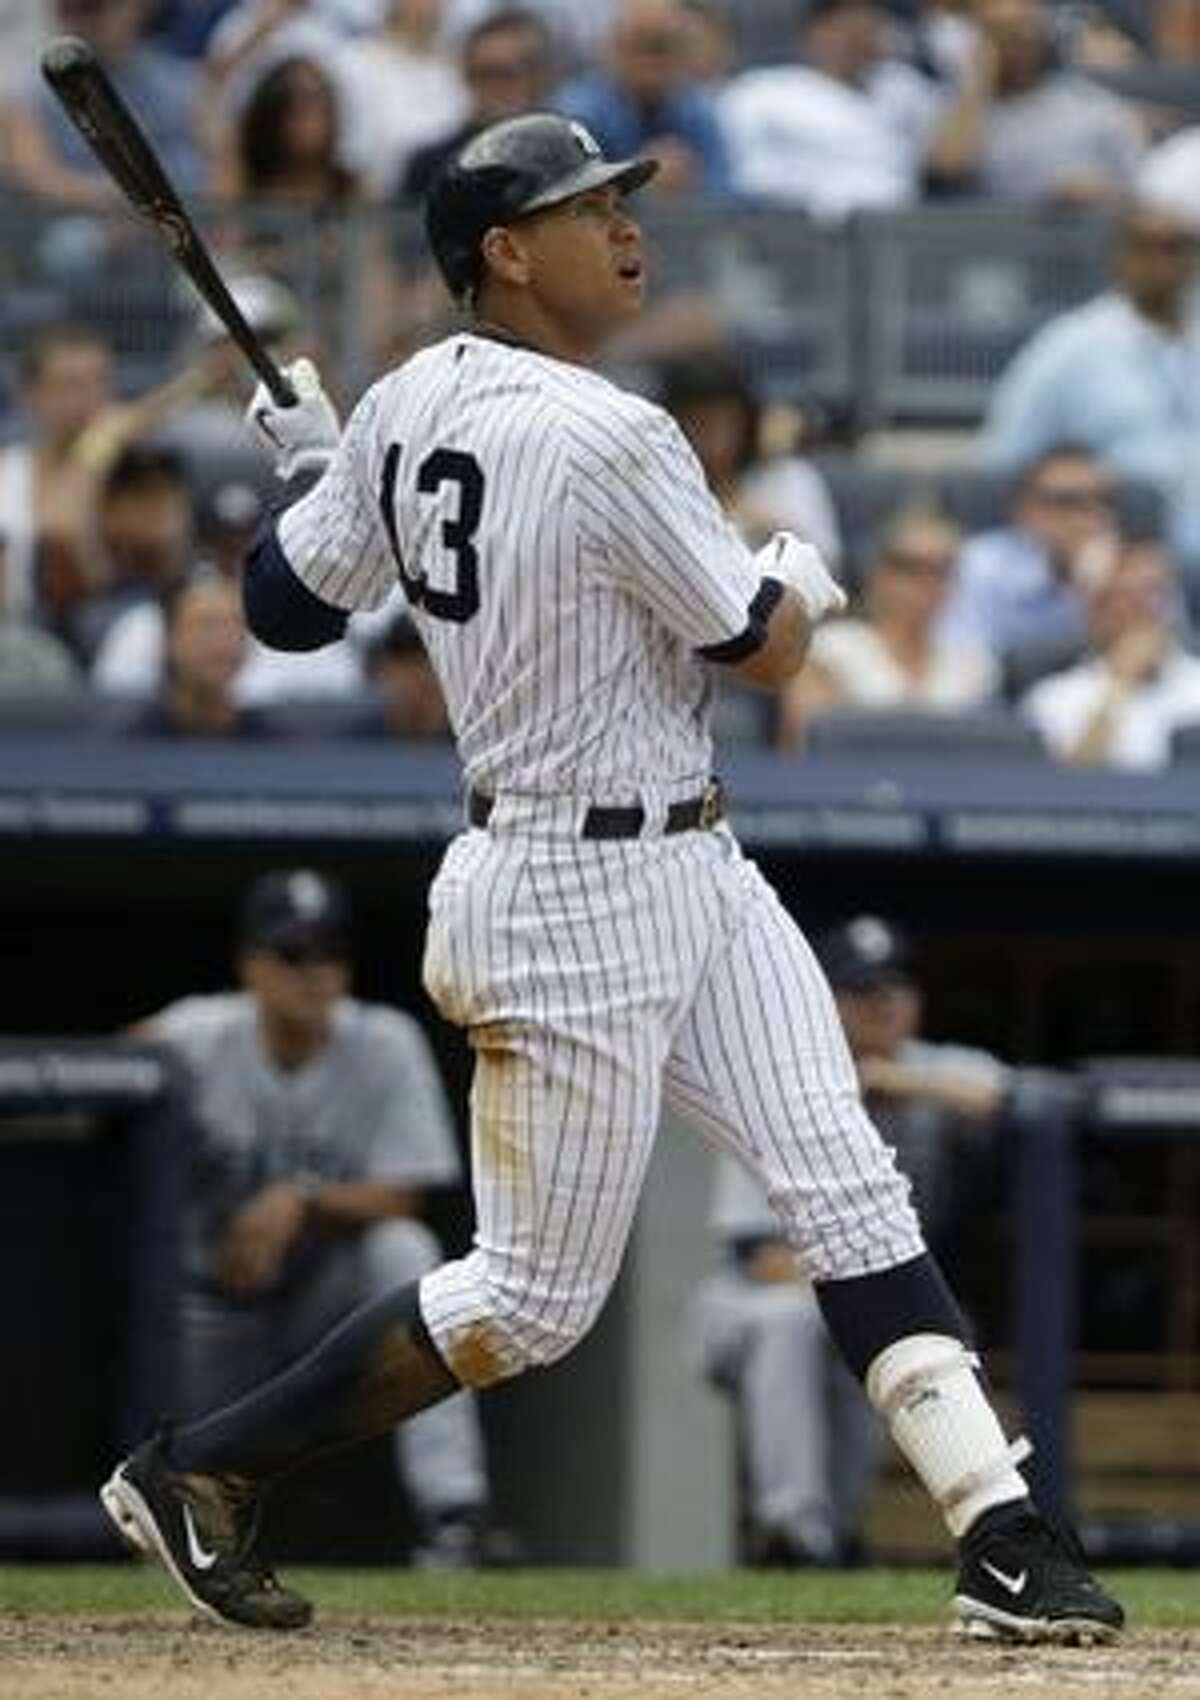 AP New York Yankees third baseman Alex Rodriguez hits a two-run home run during the eighth inning of Thursday's game against the Seattle Mariners in New York. The Yankees won the game 4-2.